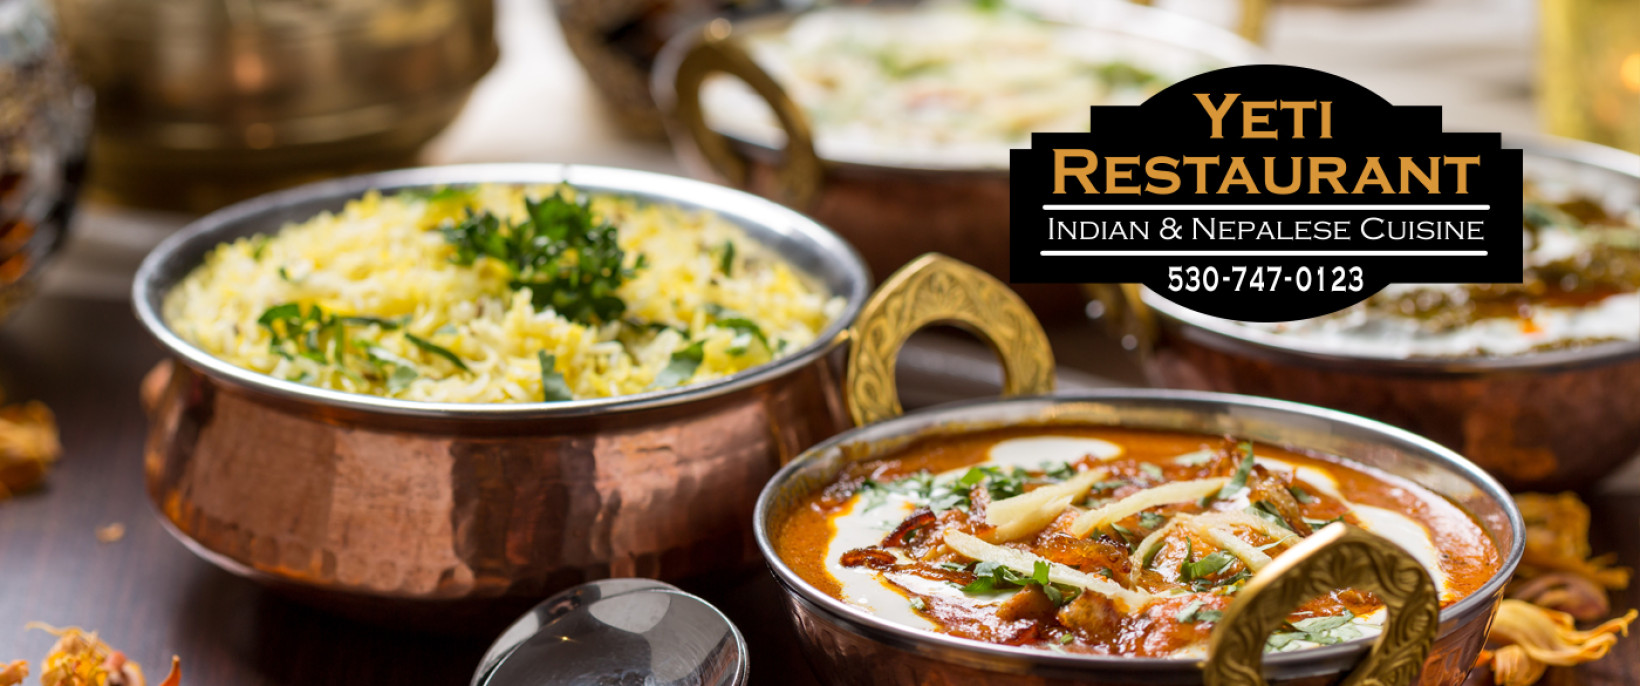 Food Resturant Davis Yeti Restaurant Indian Food Nepalese Food Himalayan Food